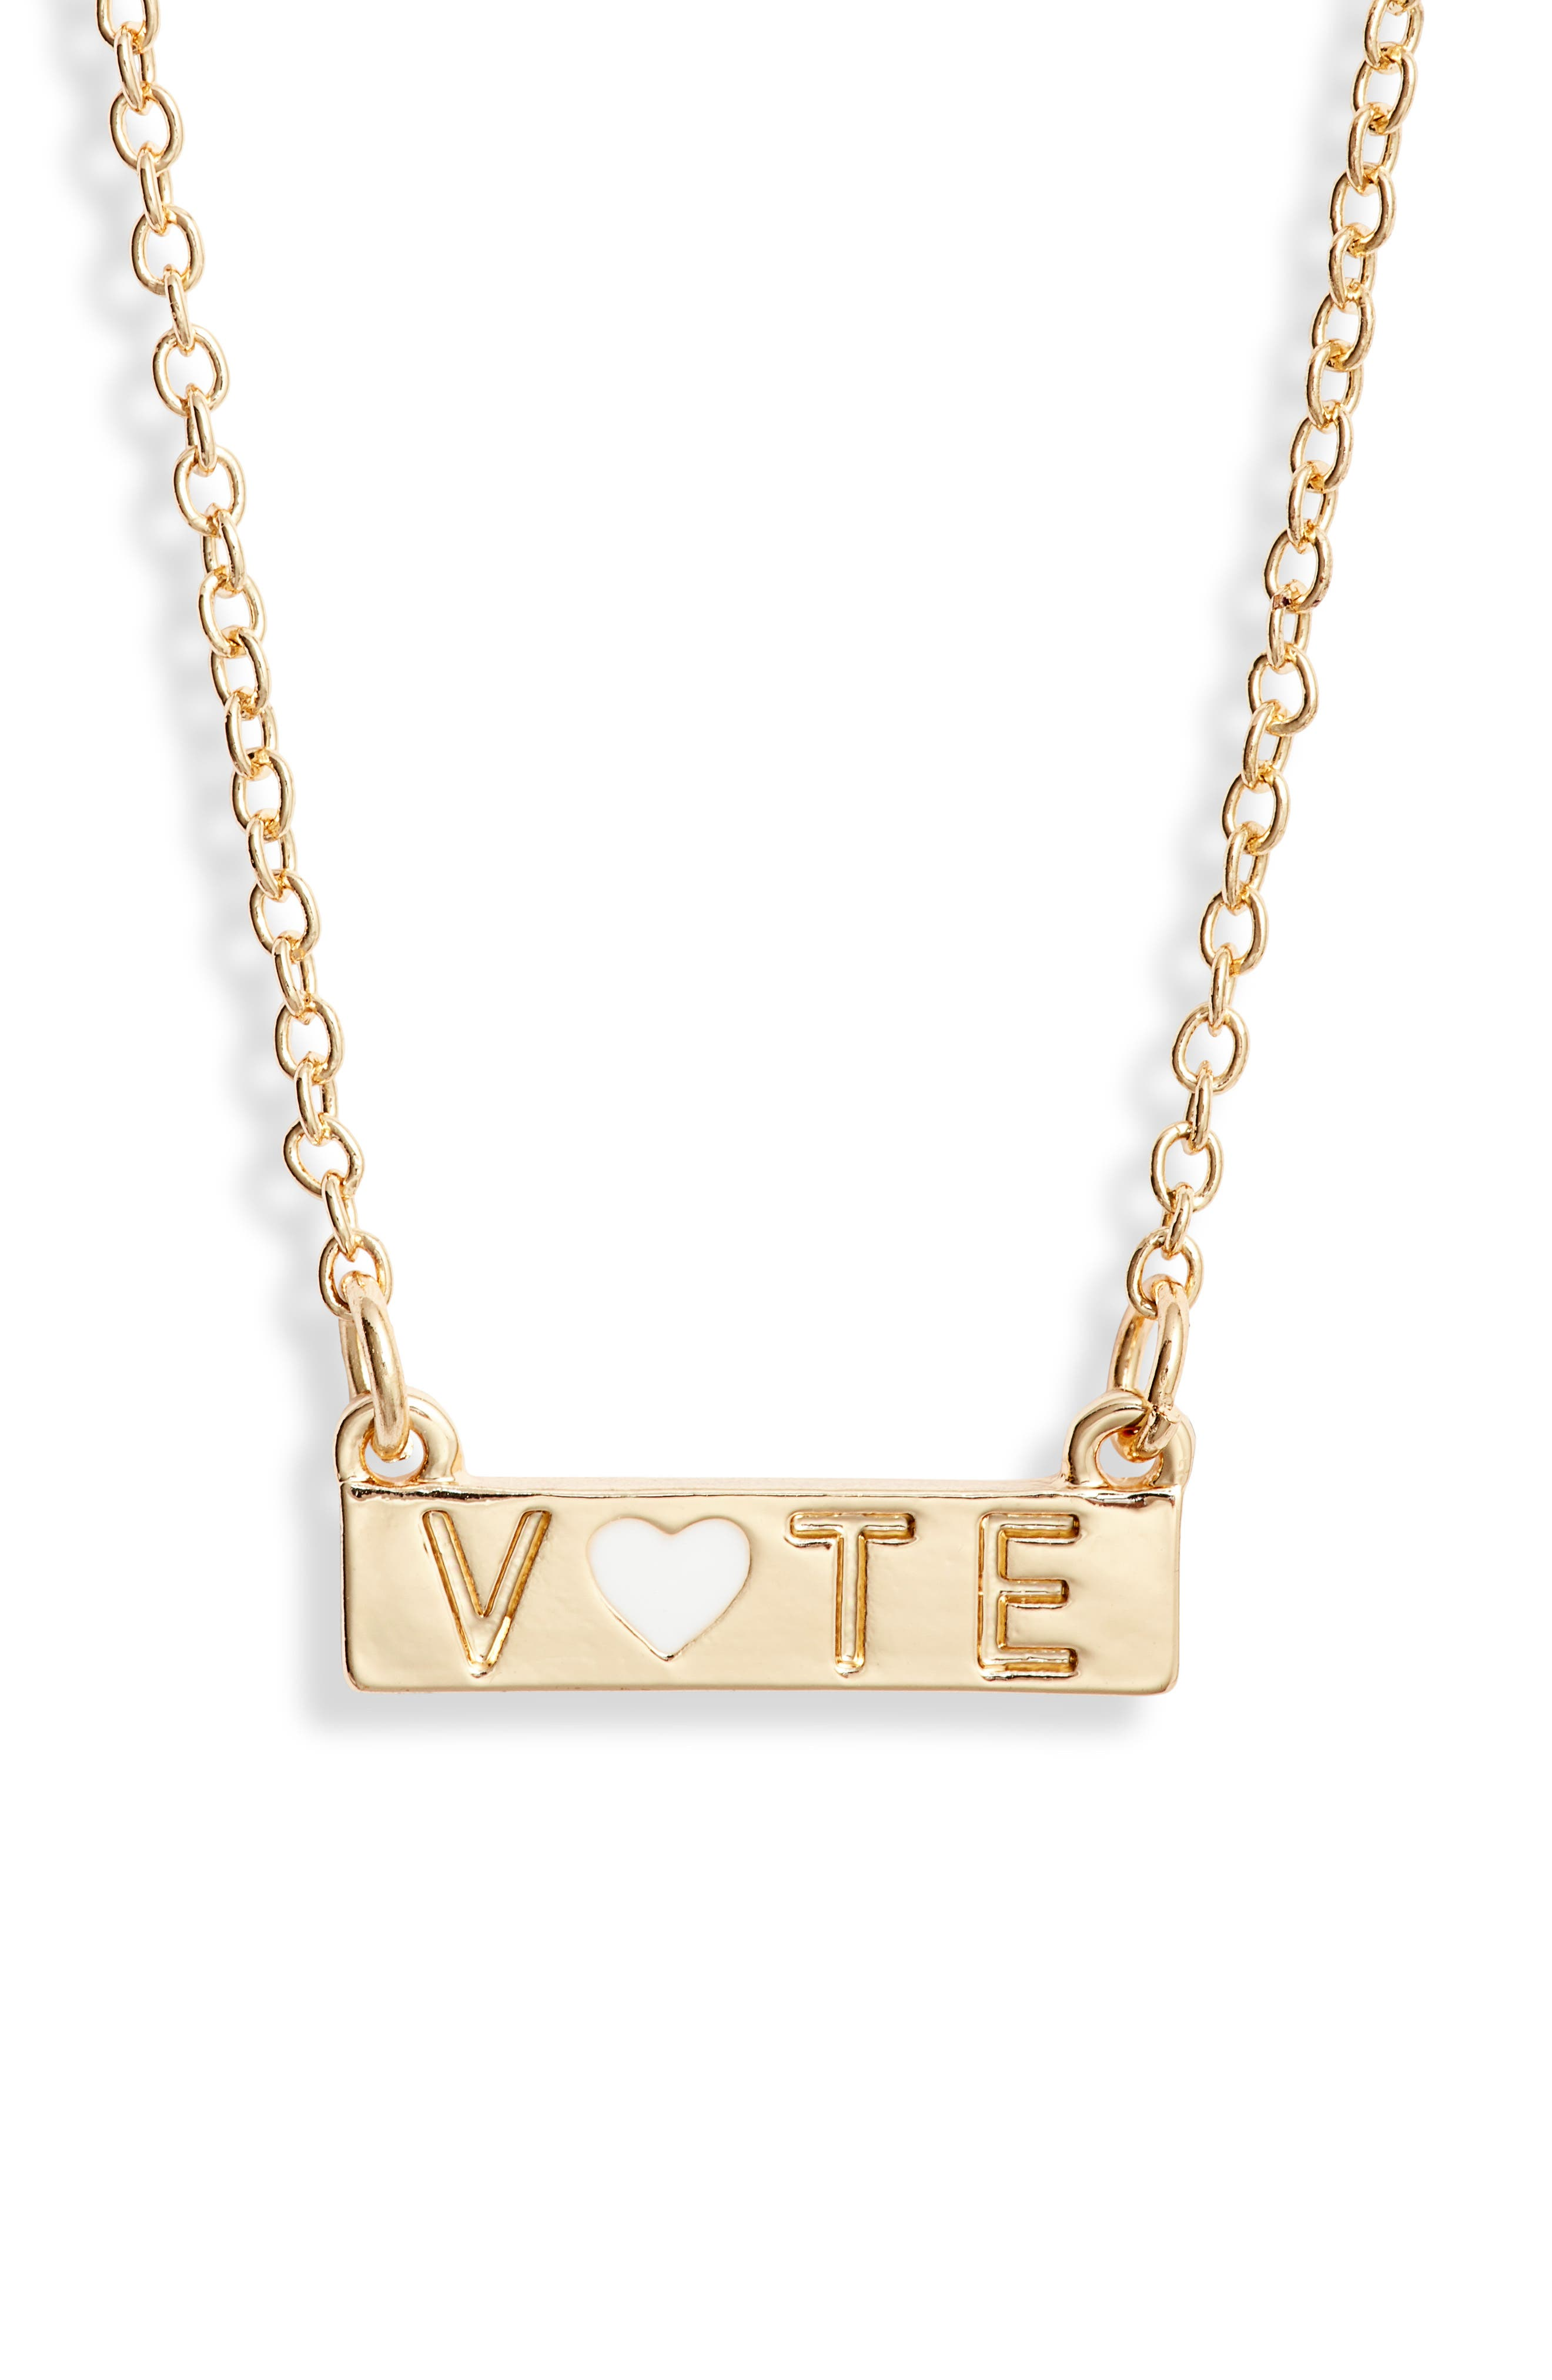 This necklace makes an important statement, but it\\\'s voting that ensures your voice is heard. Style Name: Bp. Vote Necklace. Style Number: 6097993. Available in stores.